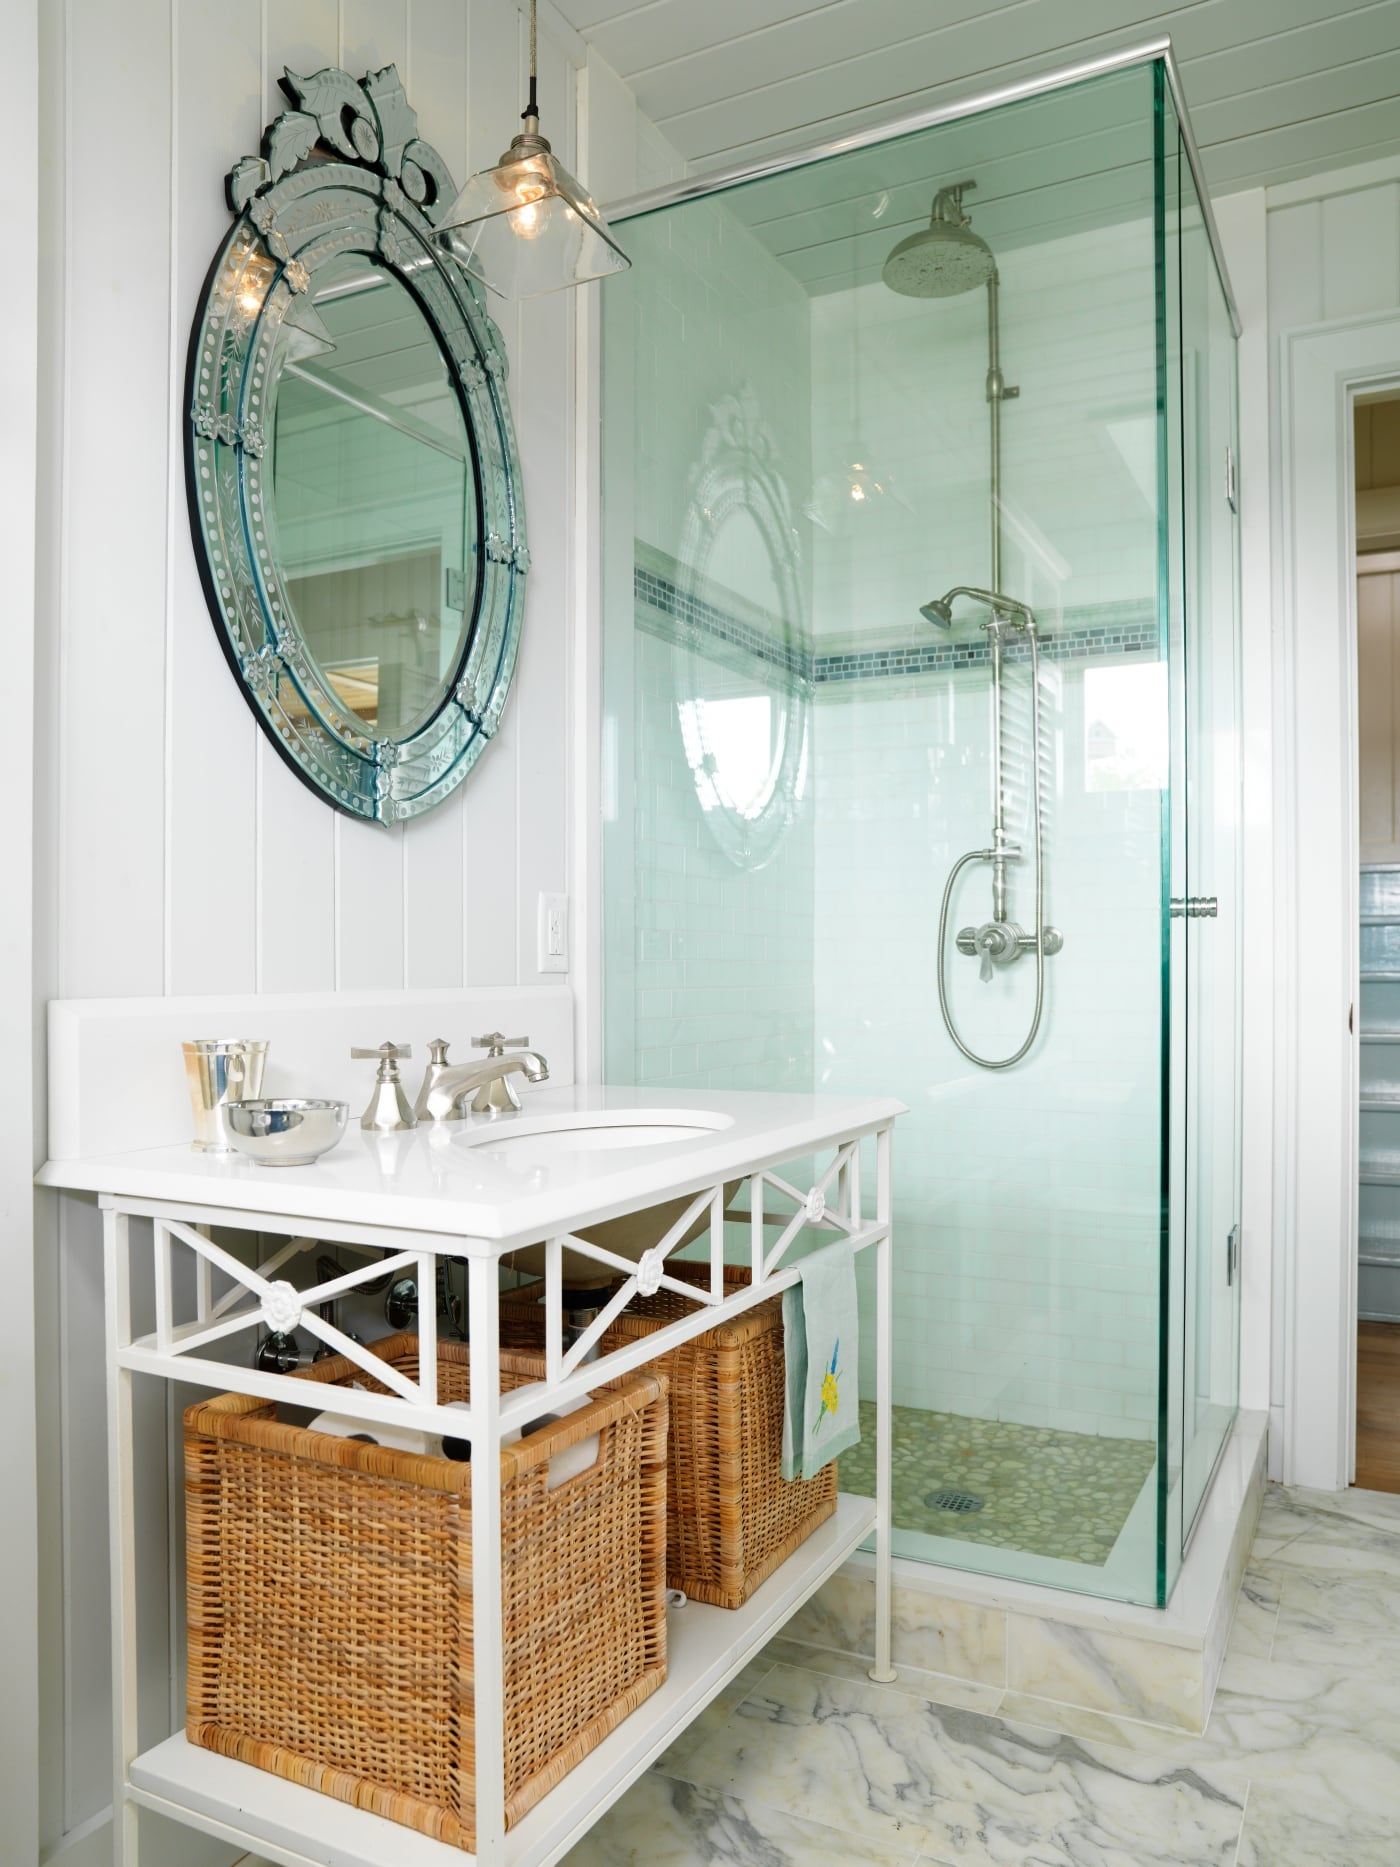 Standing full glass shower with white sink to the side if the shower. #SarahRichardson #cottagestyle